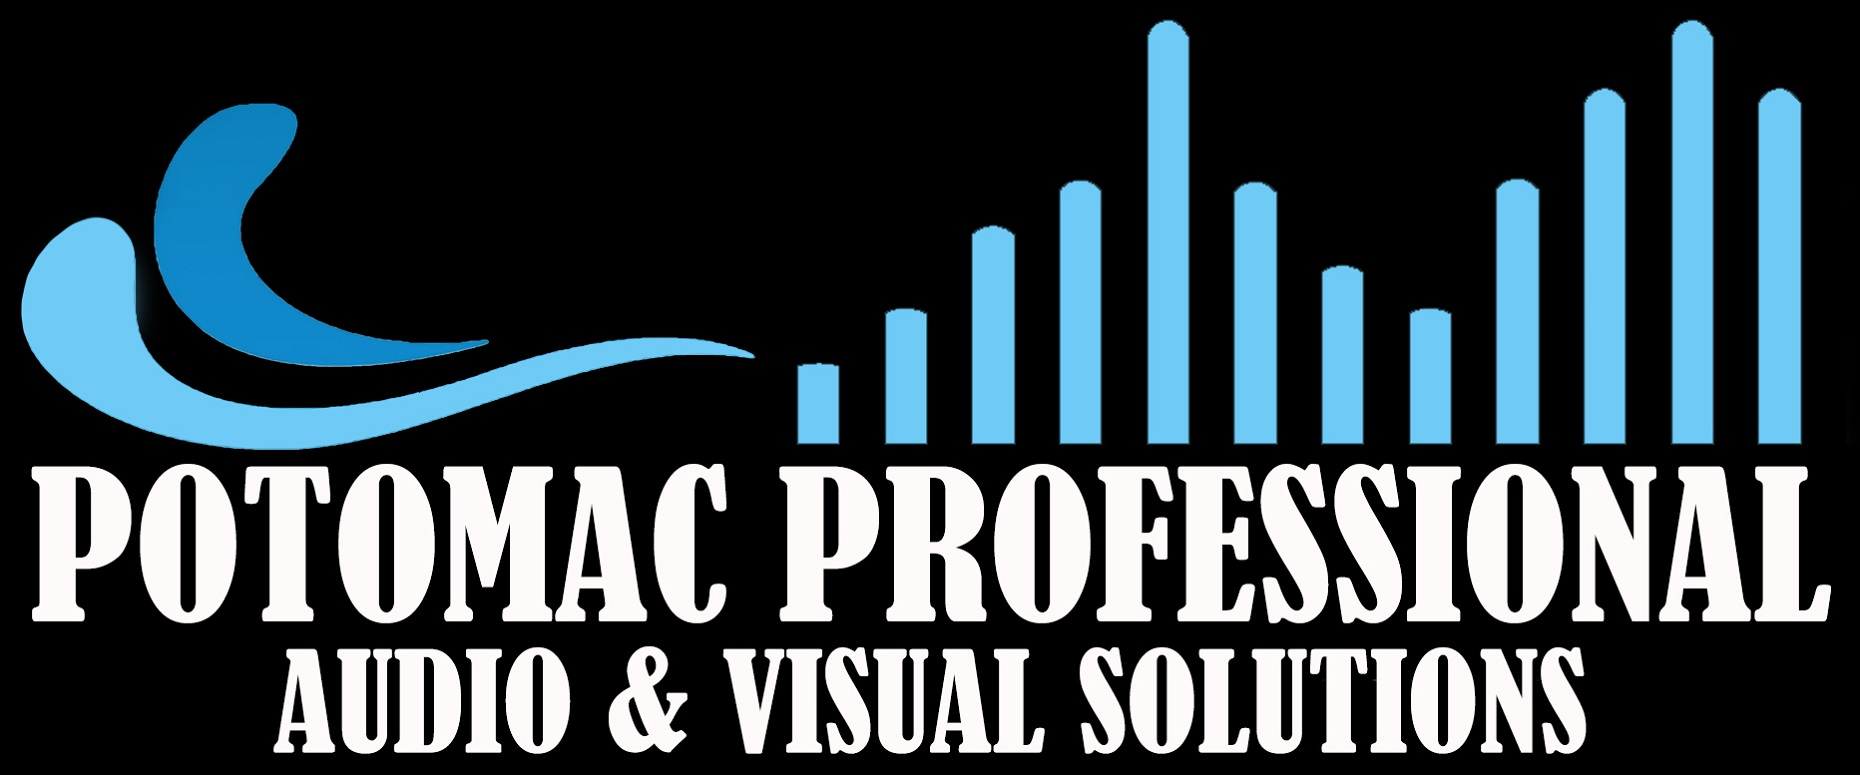 Potomac Professional Audio & Visual Solutions